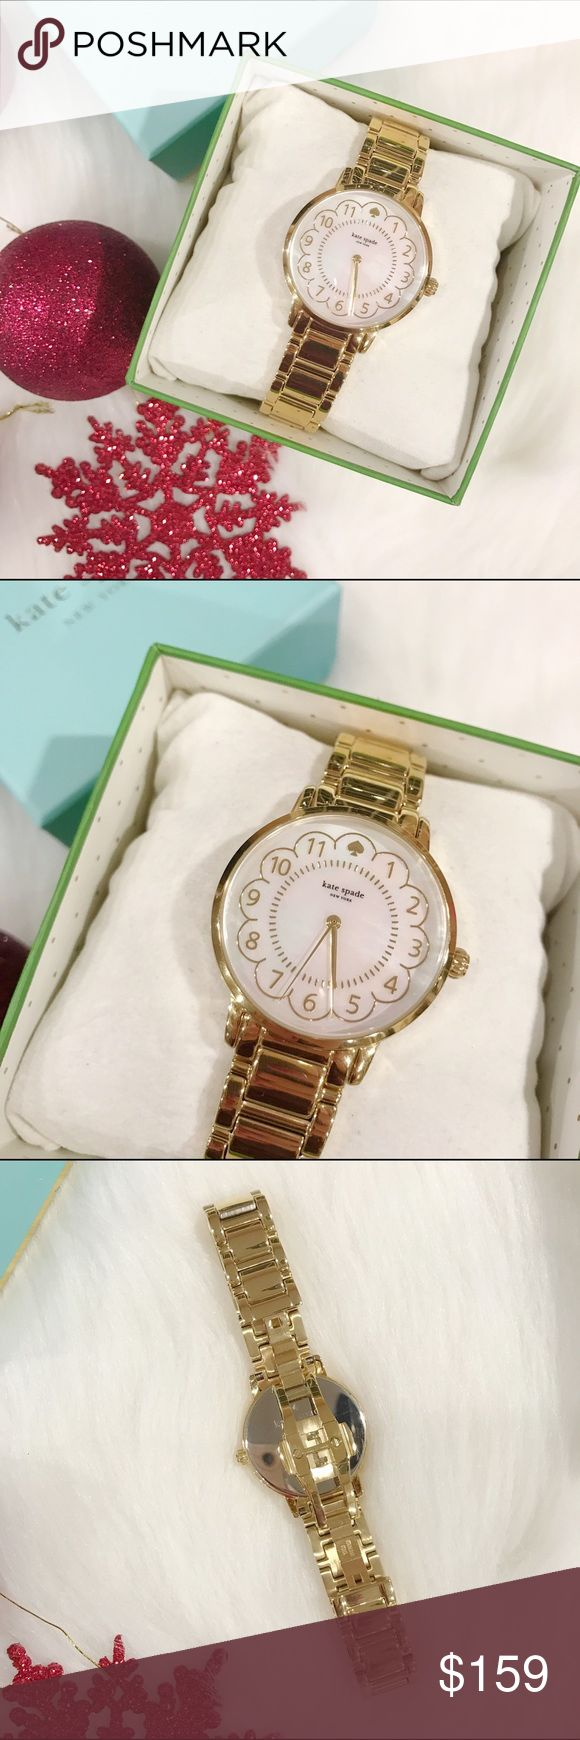 🎅🏻SALE🎅🏻Kate Spade Gold Watch Beautiful Kate Spade watch, brand new with tag, in original box, working batteries, the dial shines like a pearl, gold, dual snap enclosure, care manual. This is the perfect watch for the season!           🌷10% off bundle 2 items or more!🌷                             •NO TRADING                             •no lowballs                             •smoke free                             •fast shipper kate spade Accessories Watches